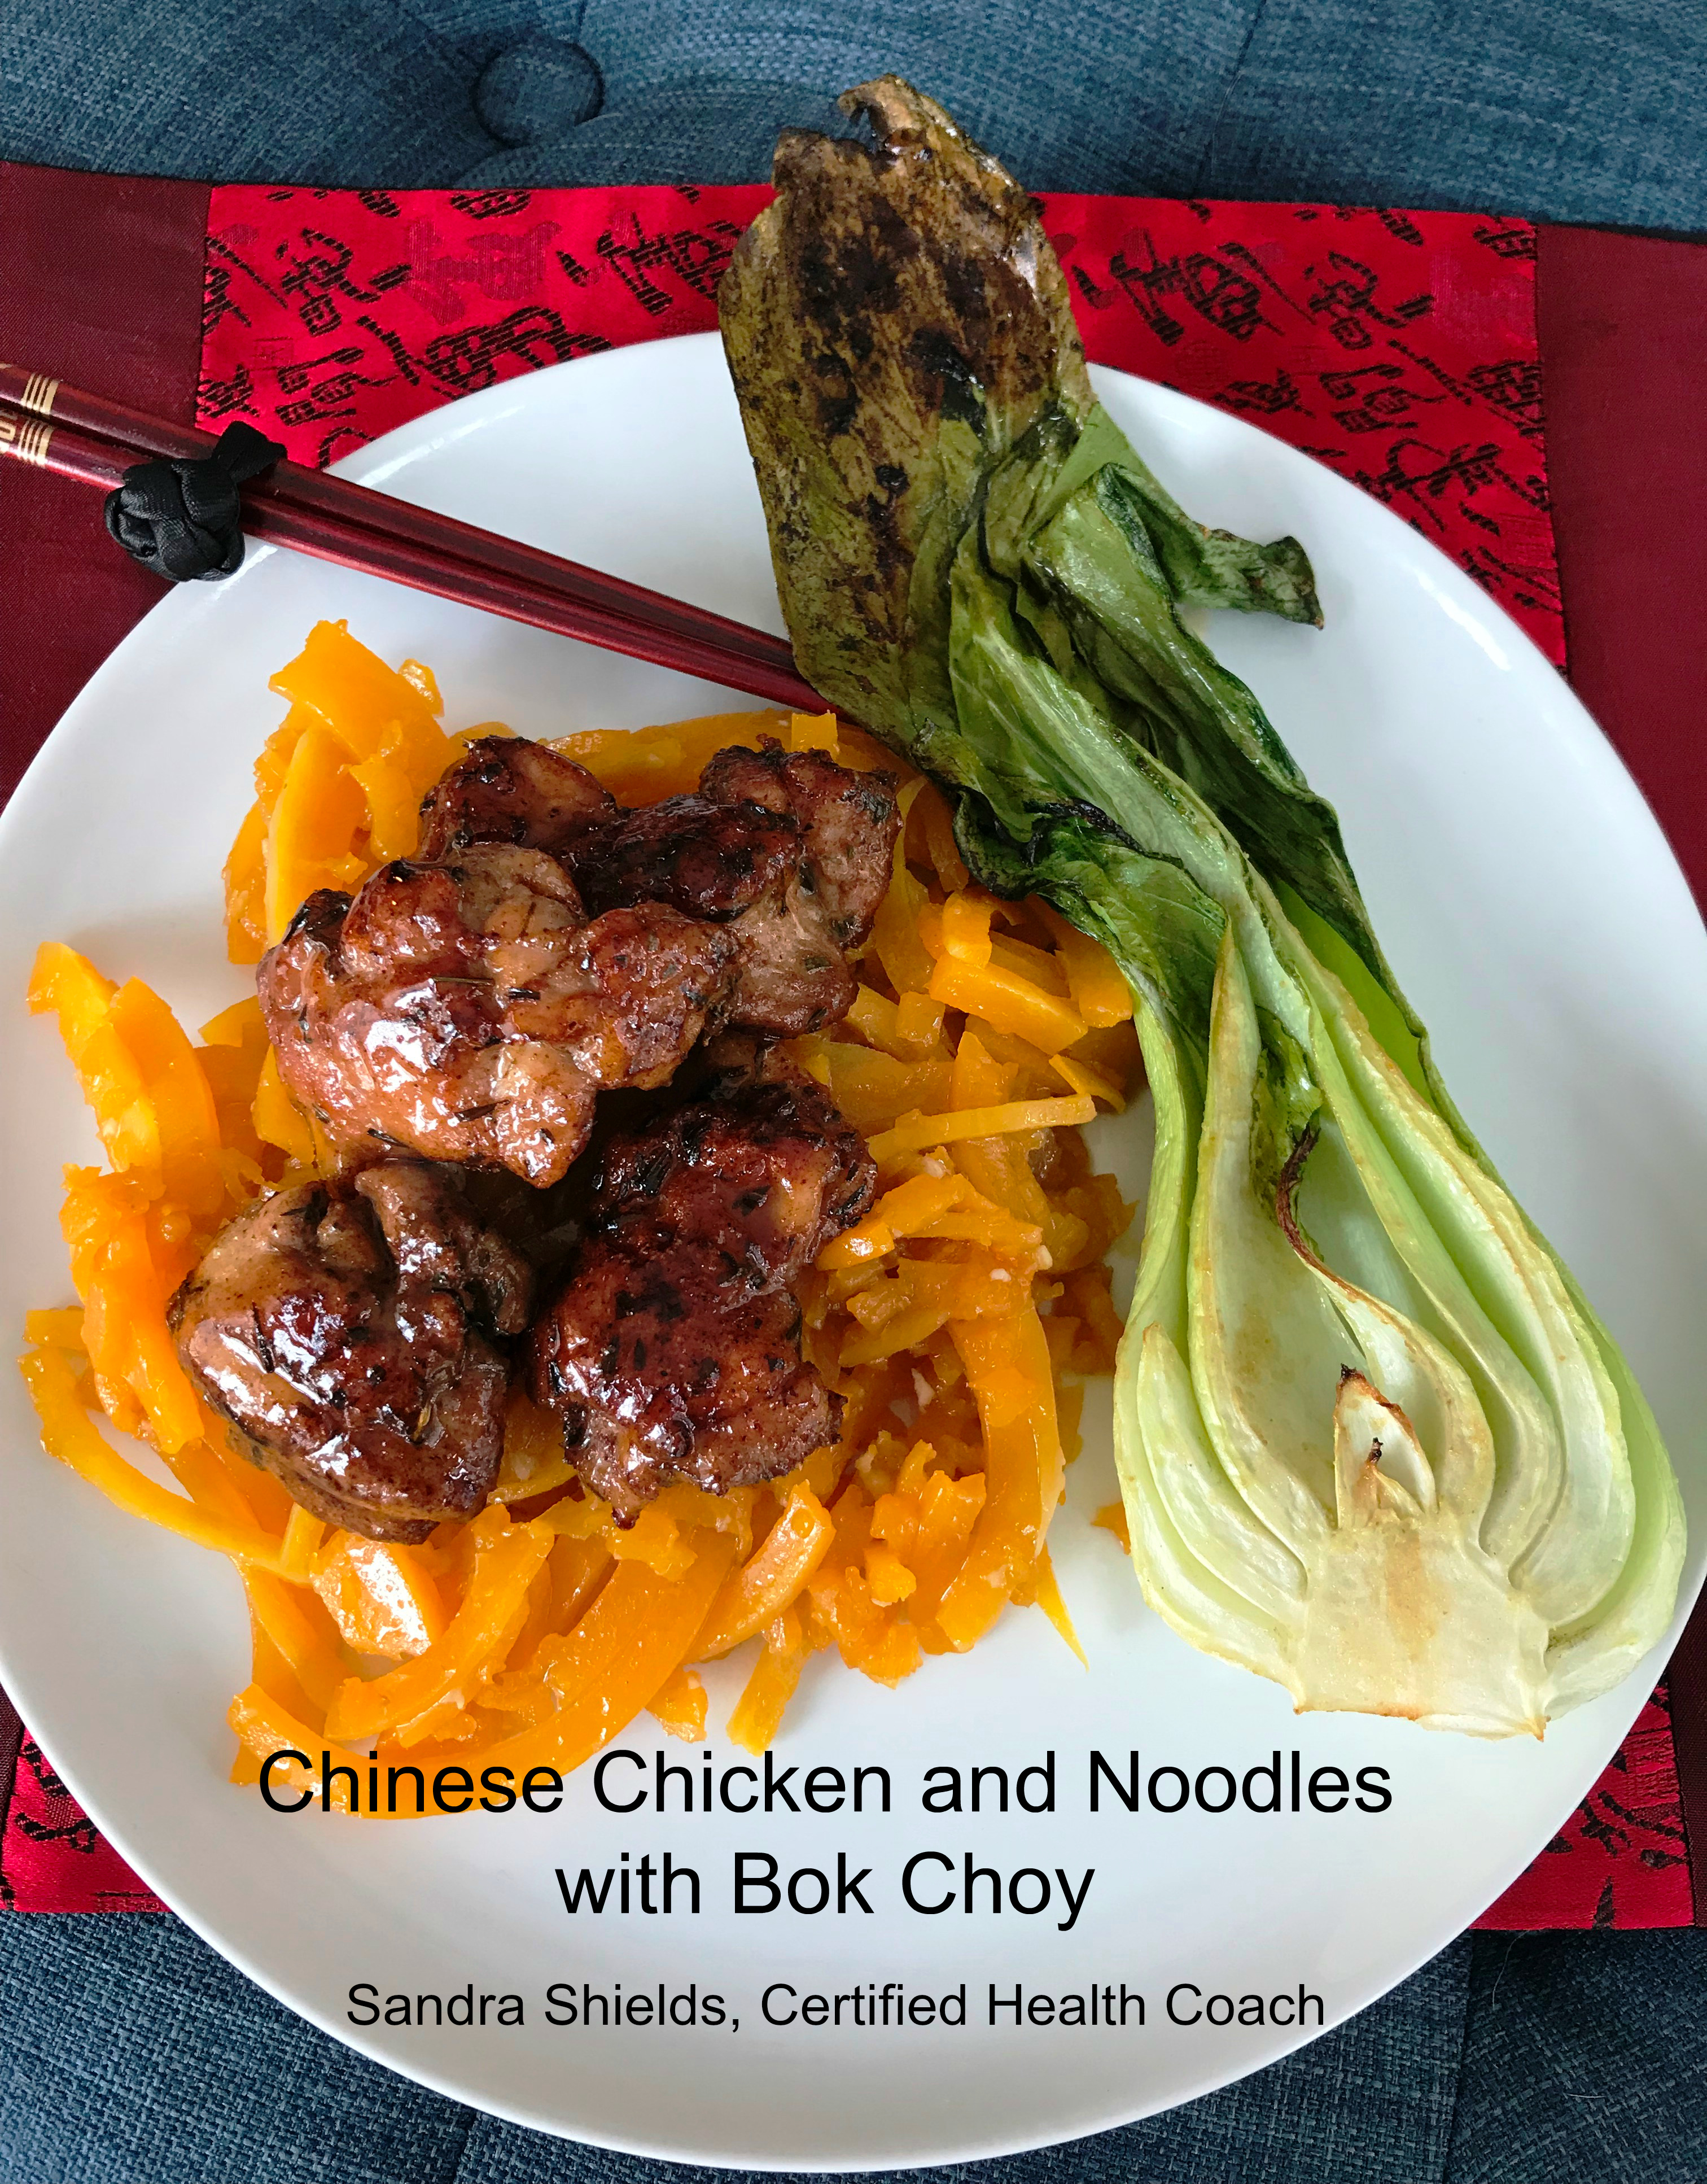 Chinese Chicken and Noodles with Bok Choy - Perfect for Chinese New Year - Paleo, AIP